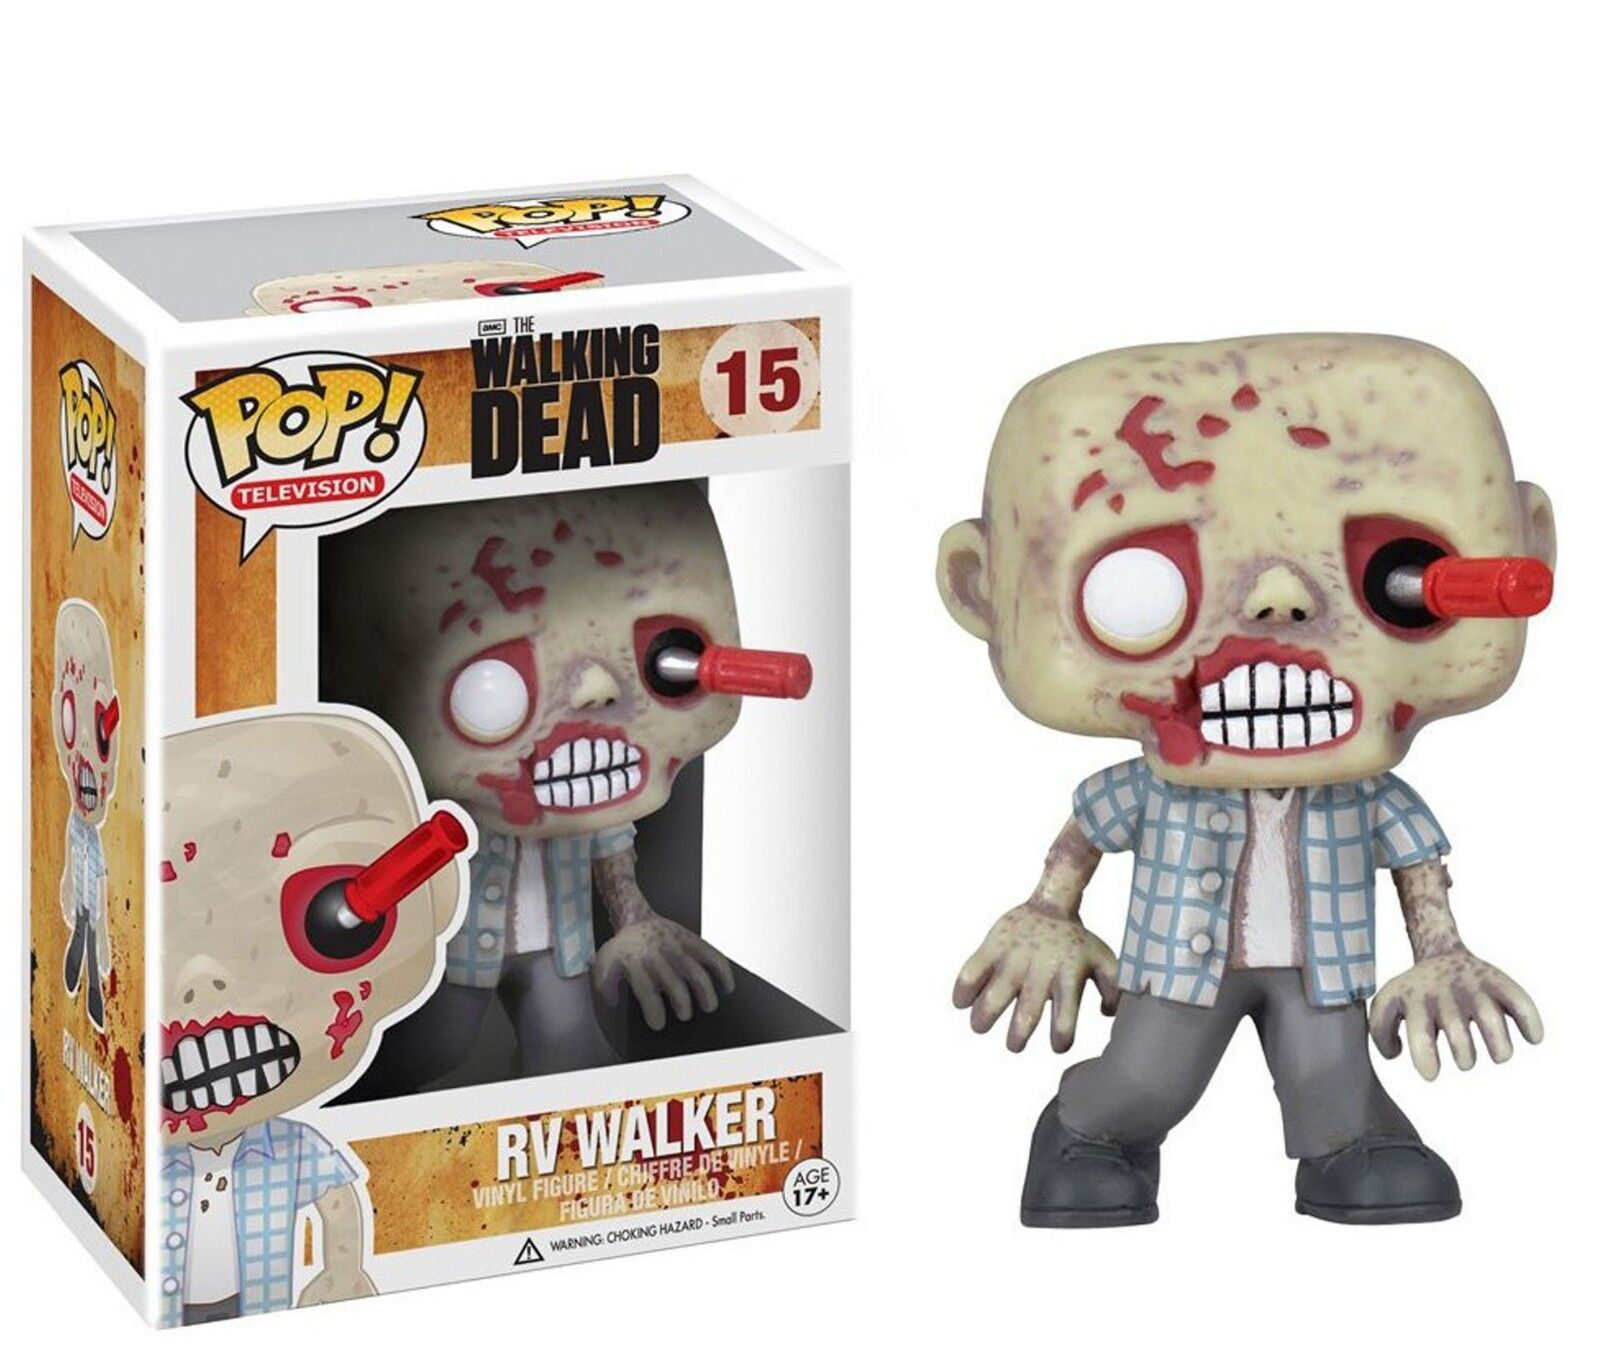 FUNKO POP - WALKING DEAD - RV WALKER - VINYL FIGURE RETIROT  15 VAULTED